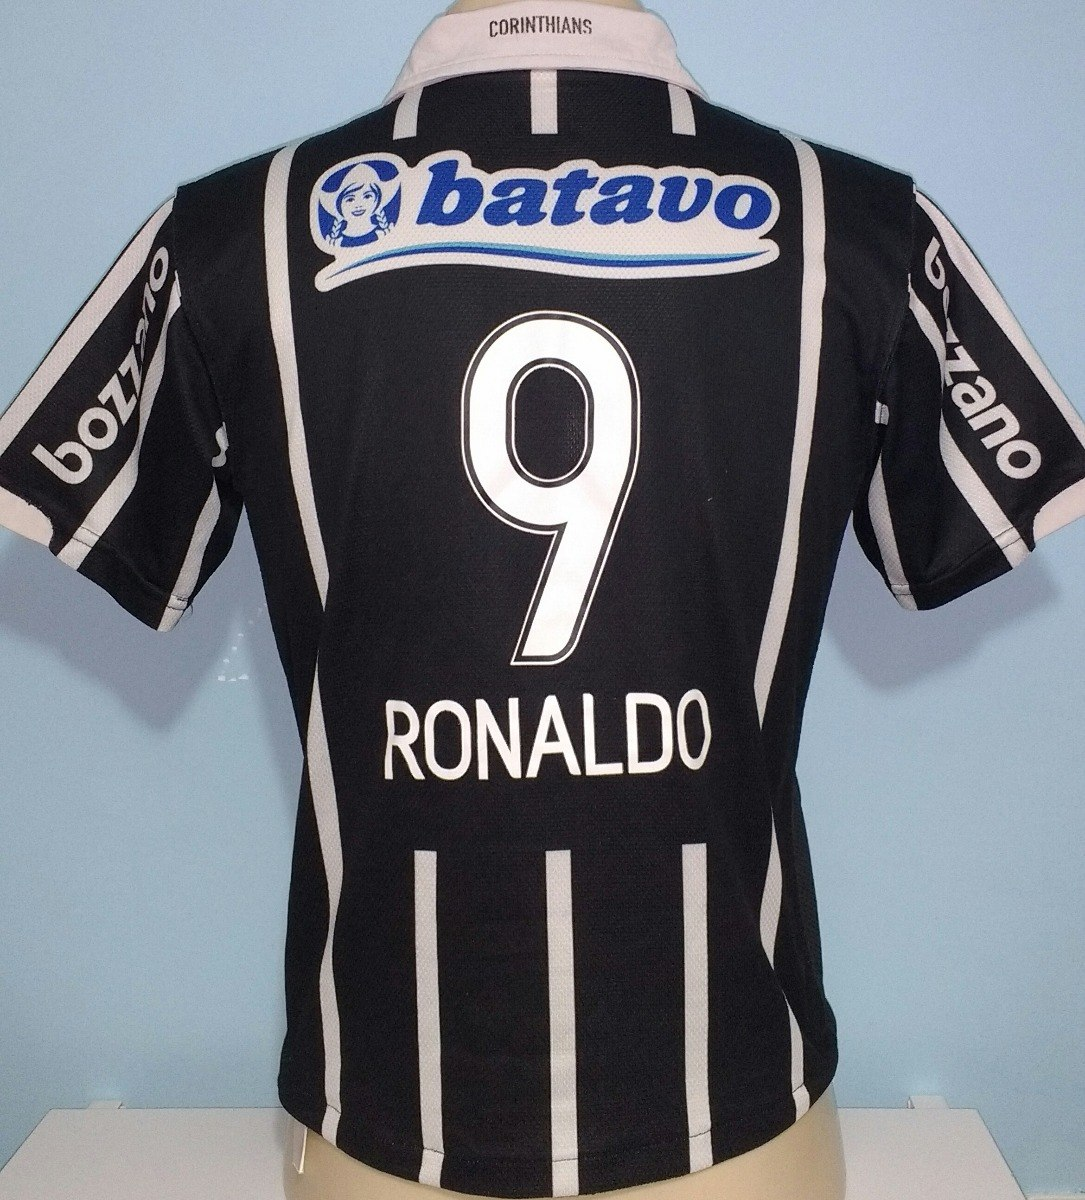 uk availability 07470 6ea40 Camisa Do Corinthians Ronaldo Fenômeno 2009 Nike - 16